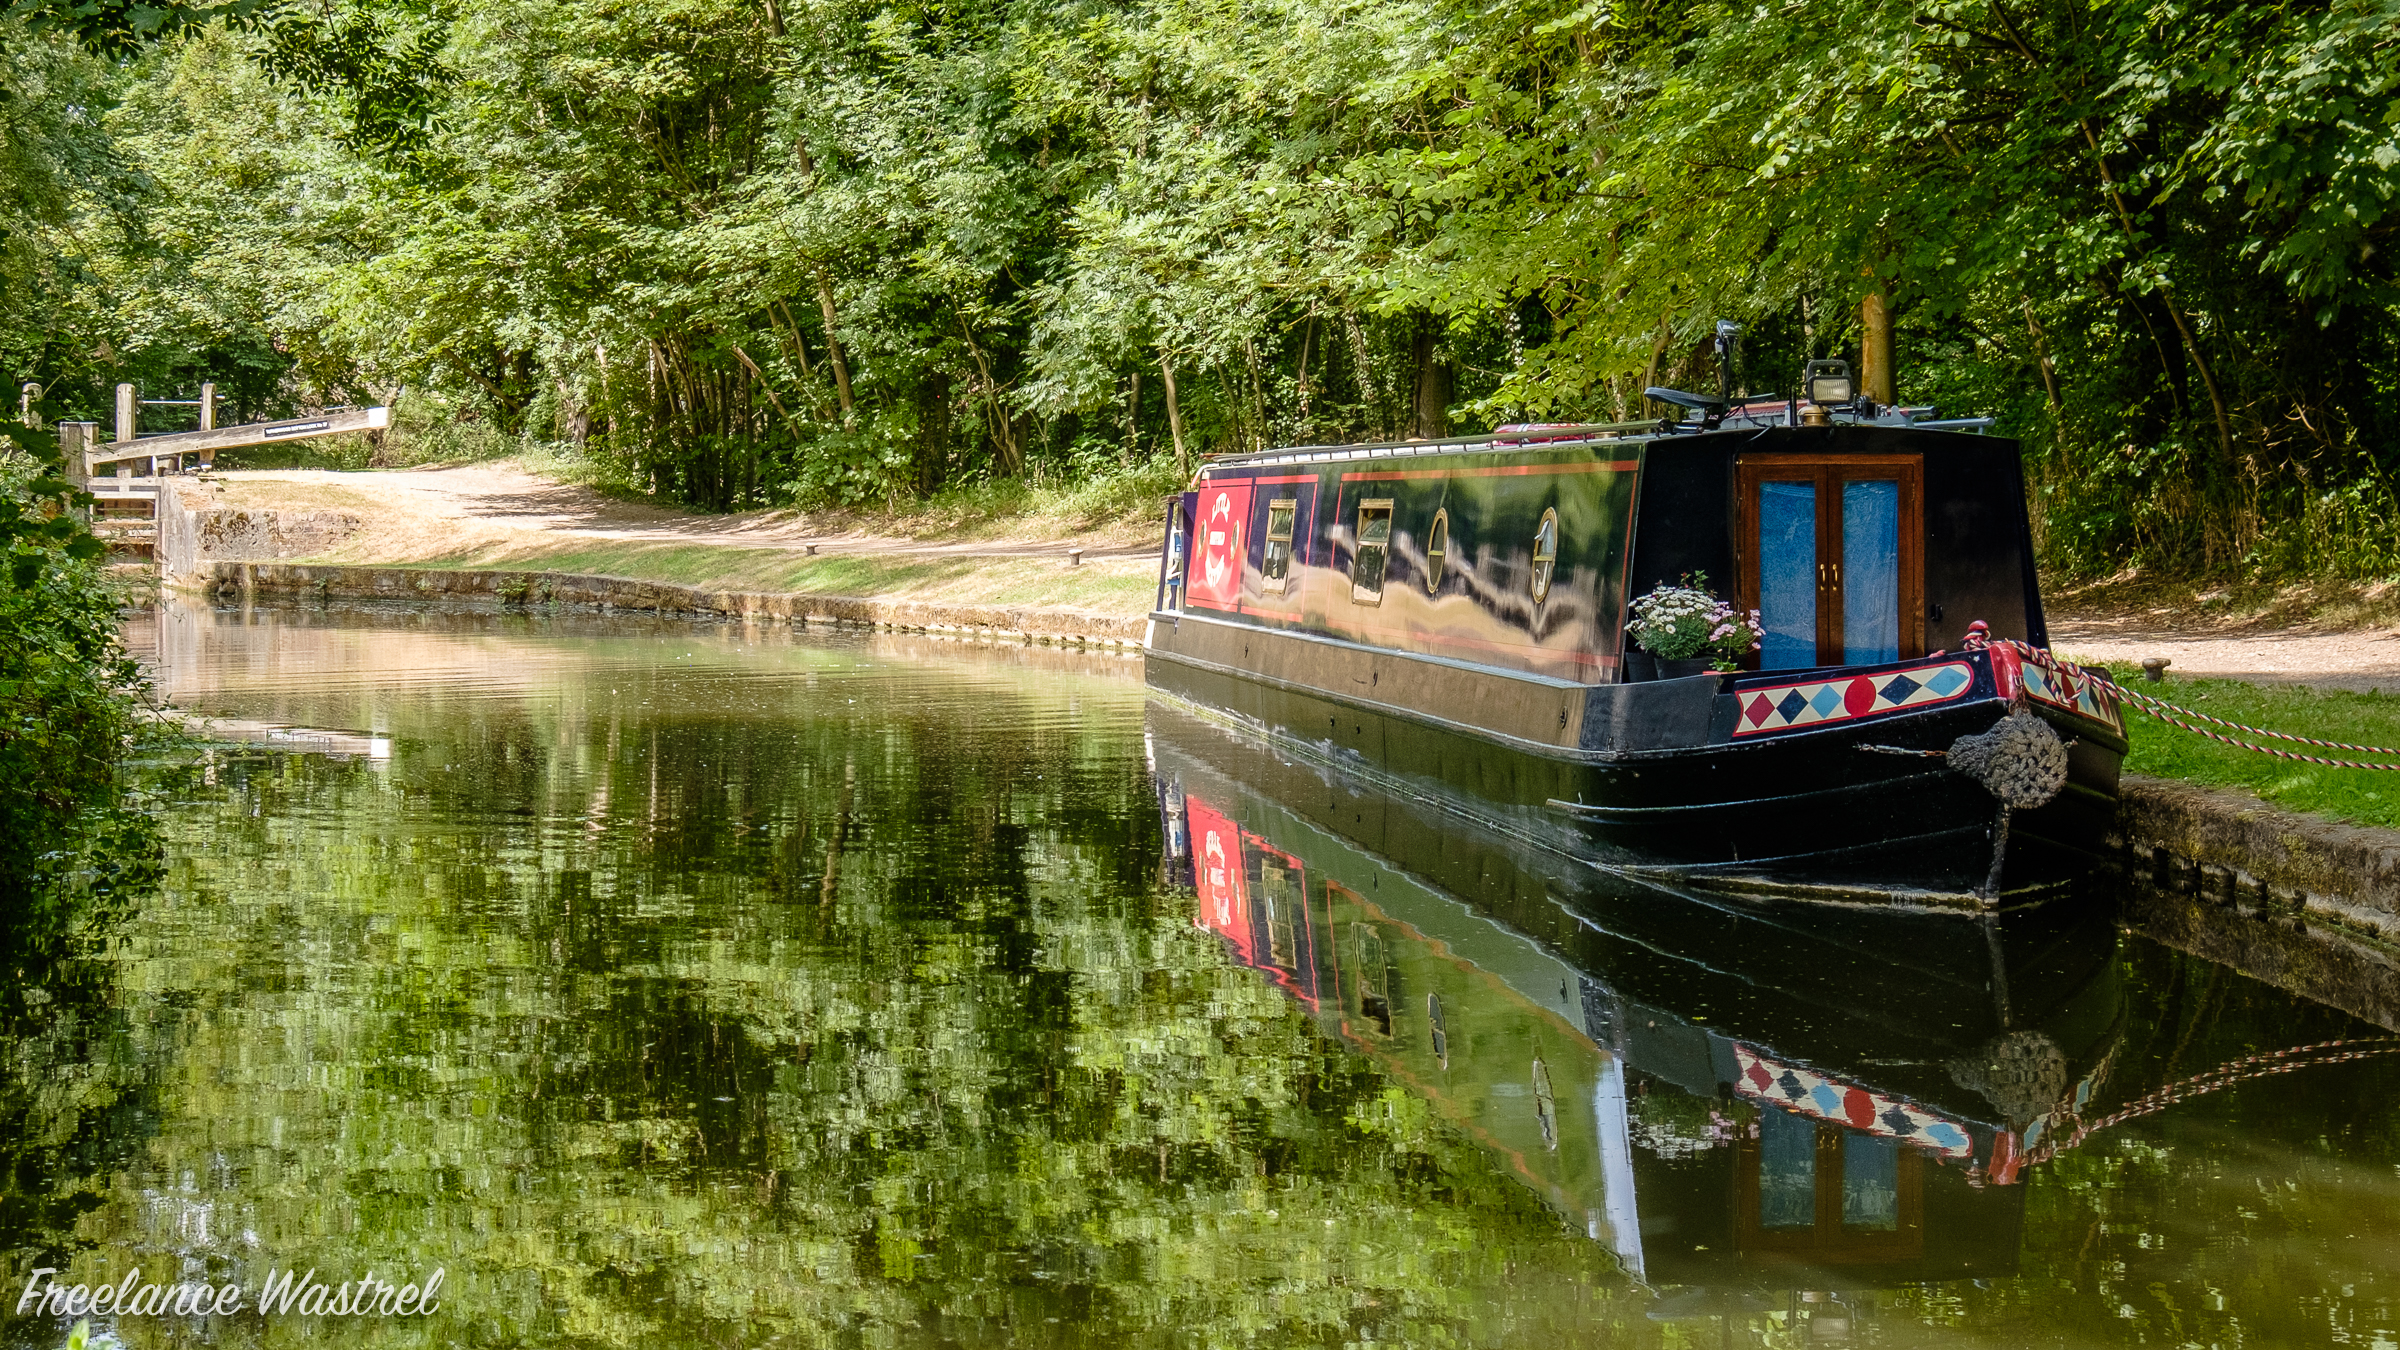 57ft narrow boat 'Little Mester'